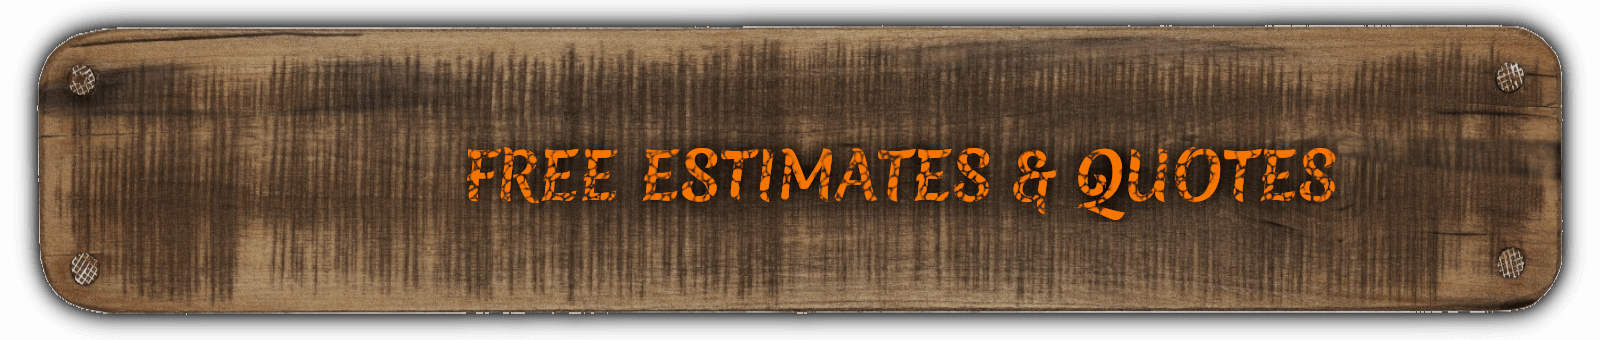 Completely FREE Estimates and Quotes